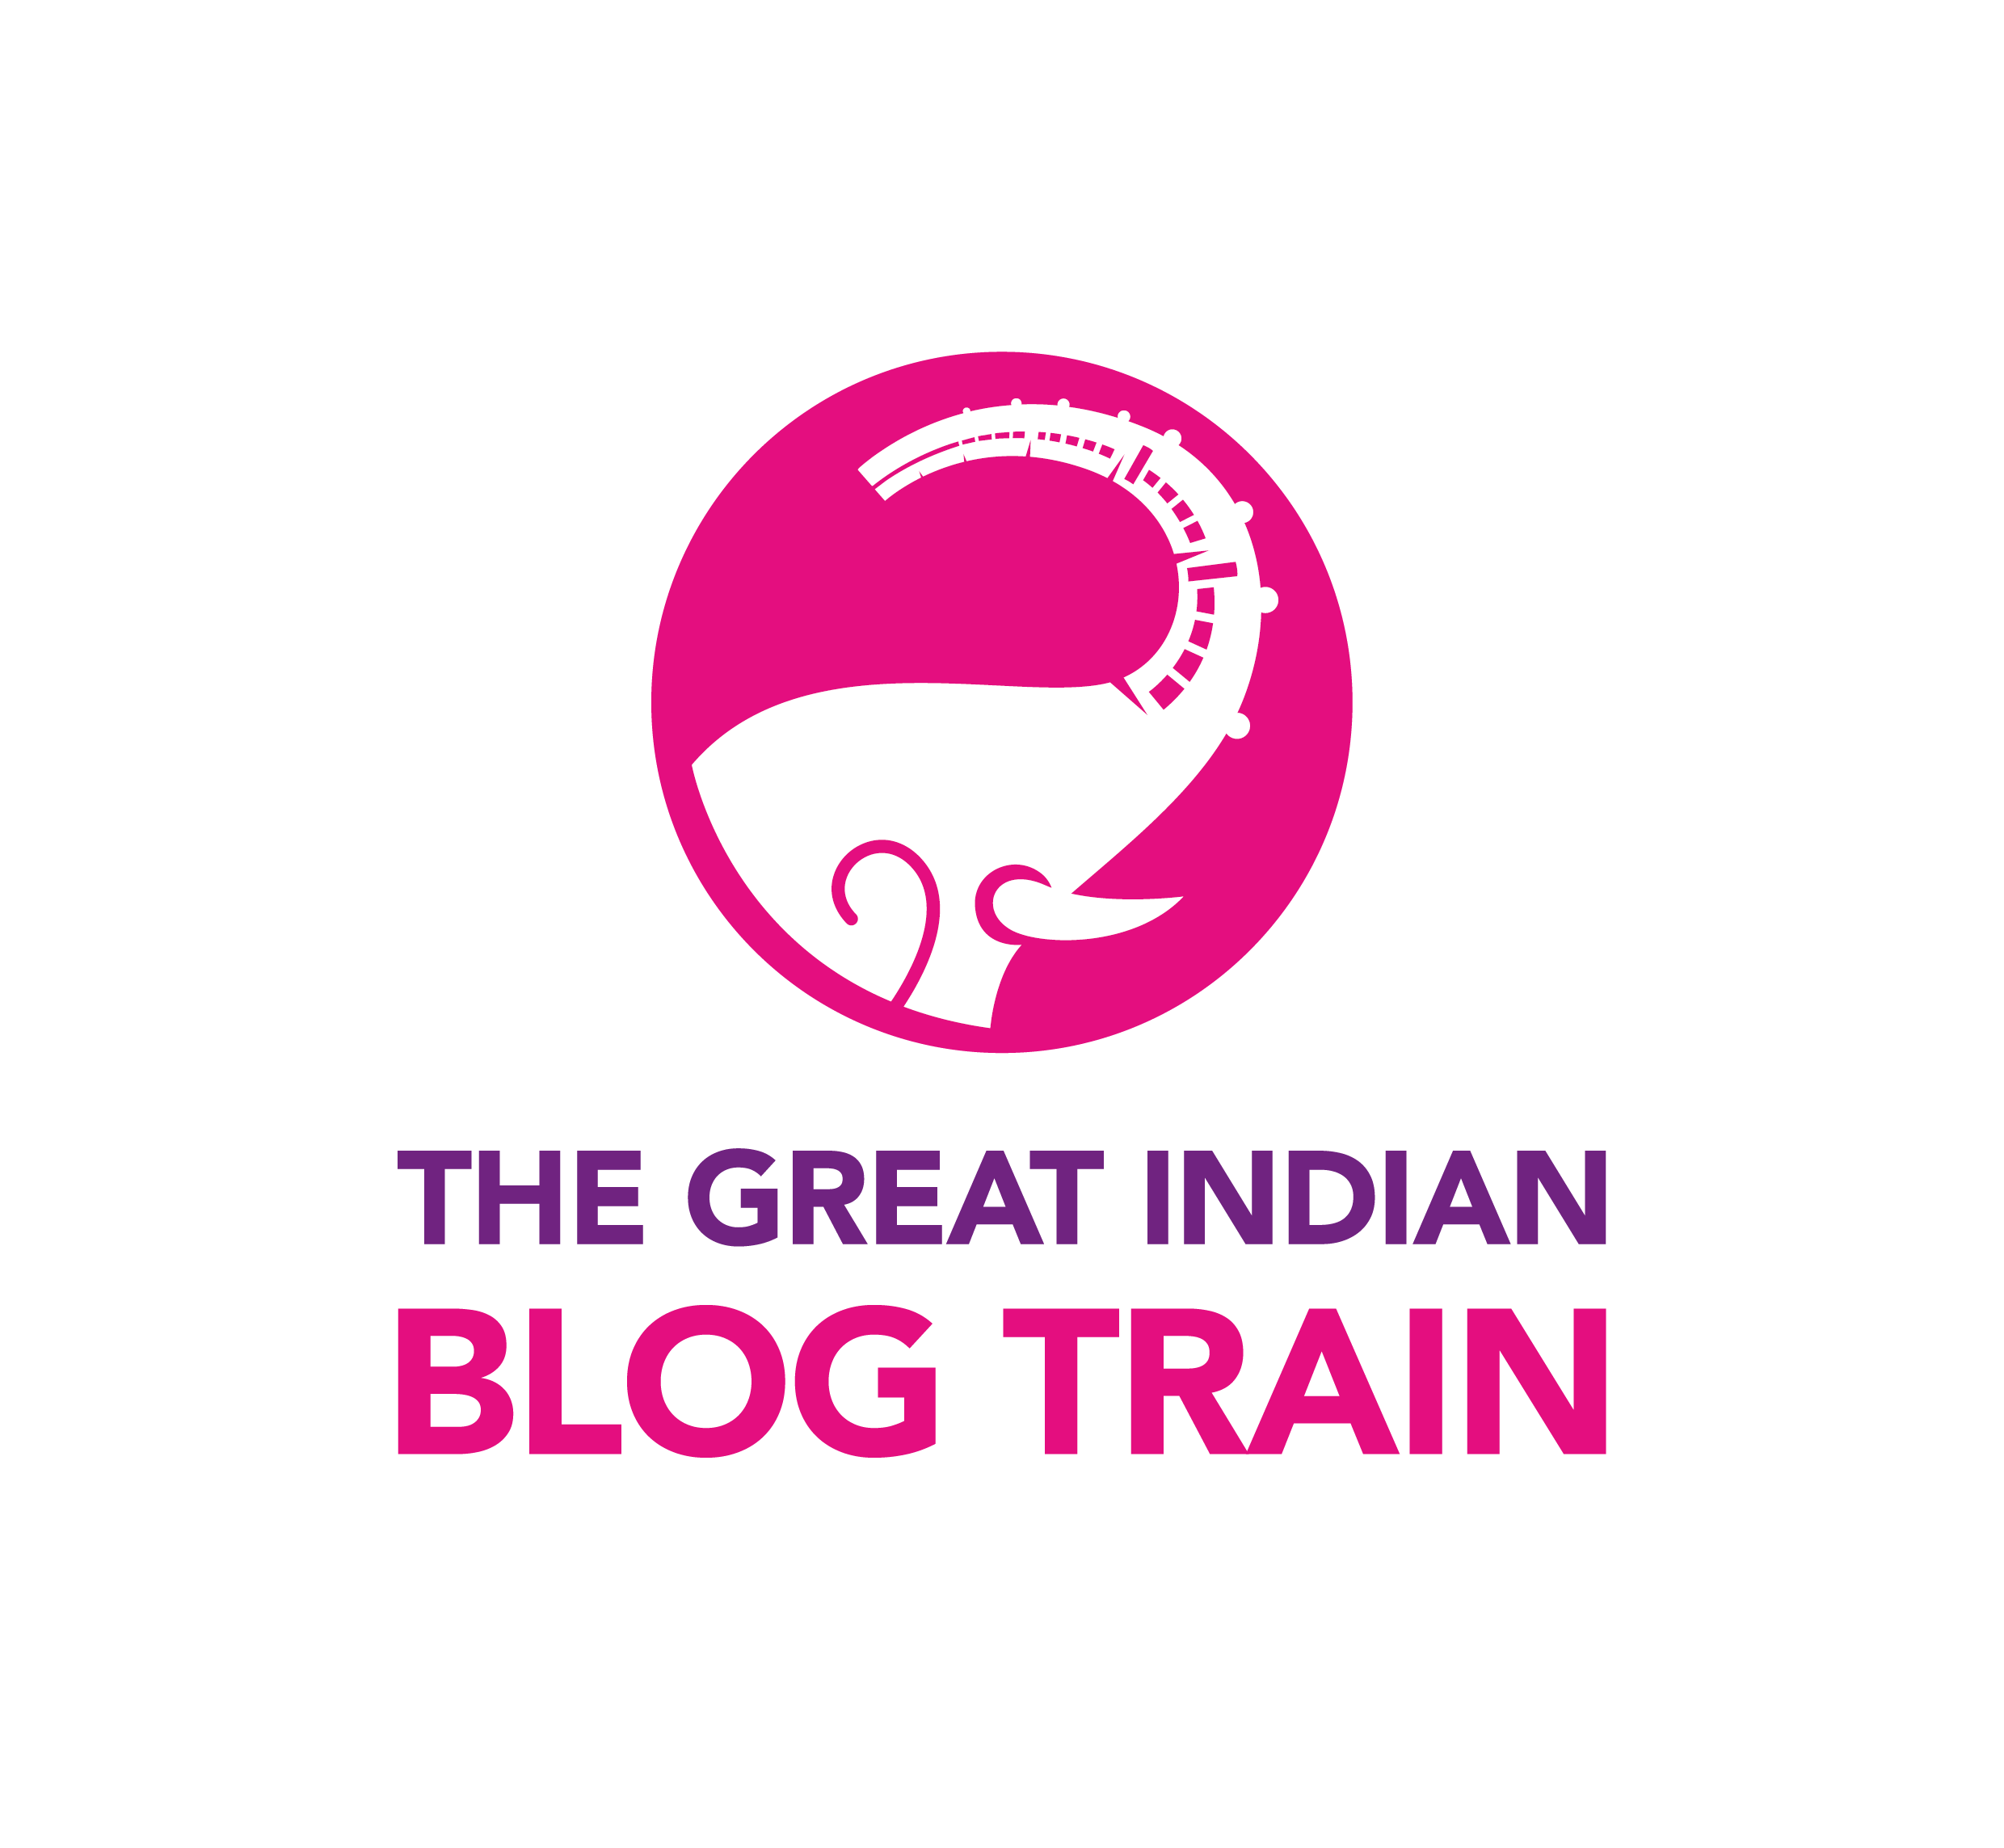 The Great Indian Blog Train